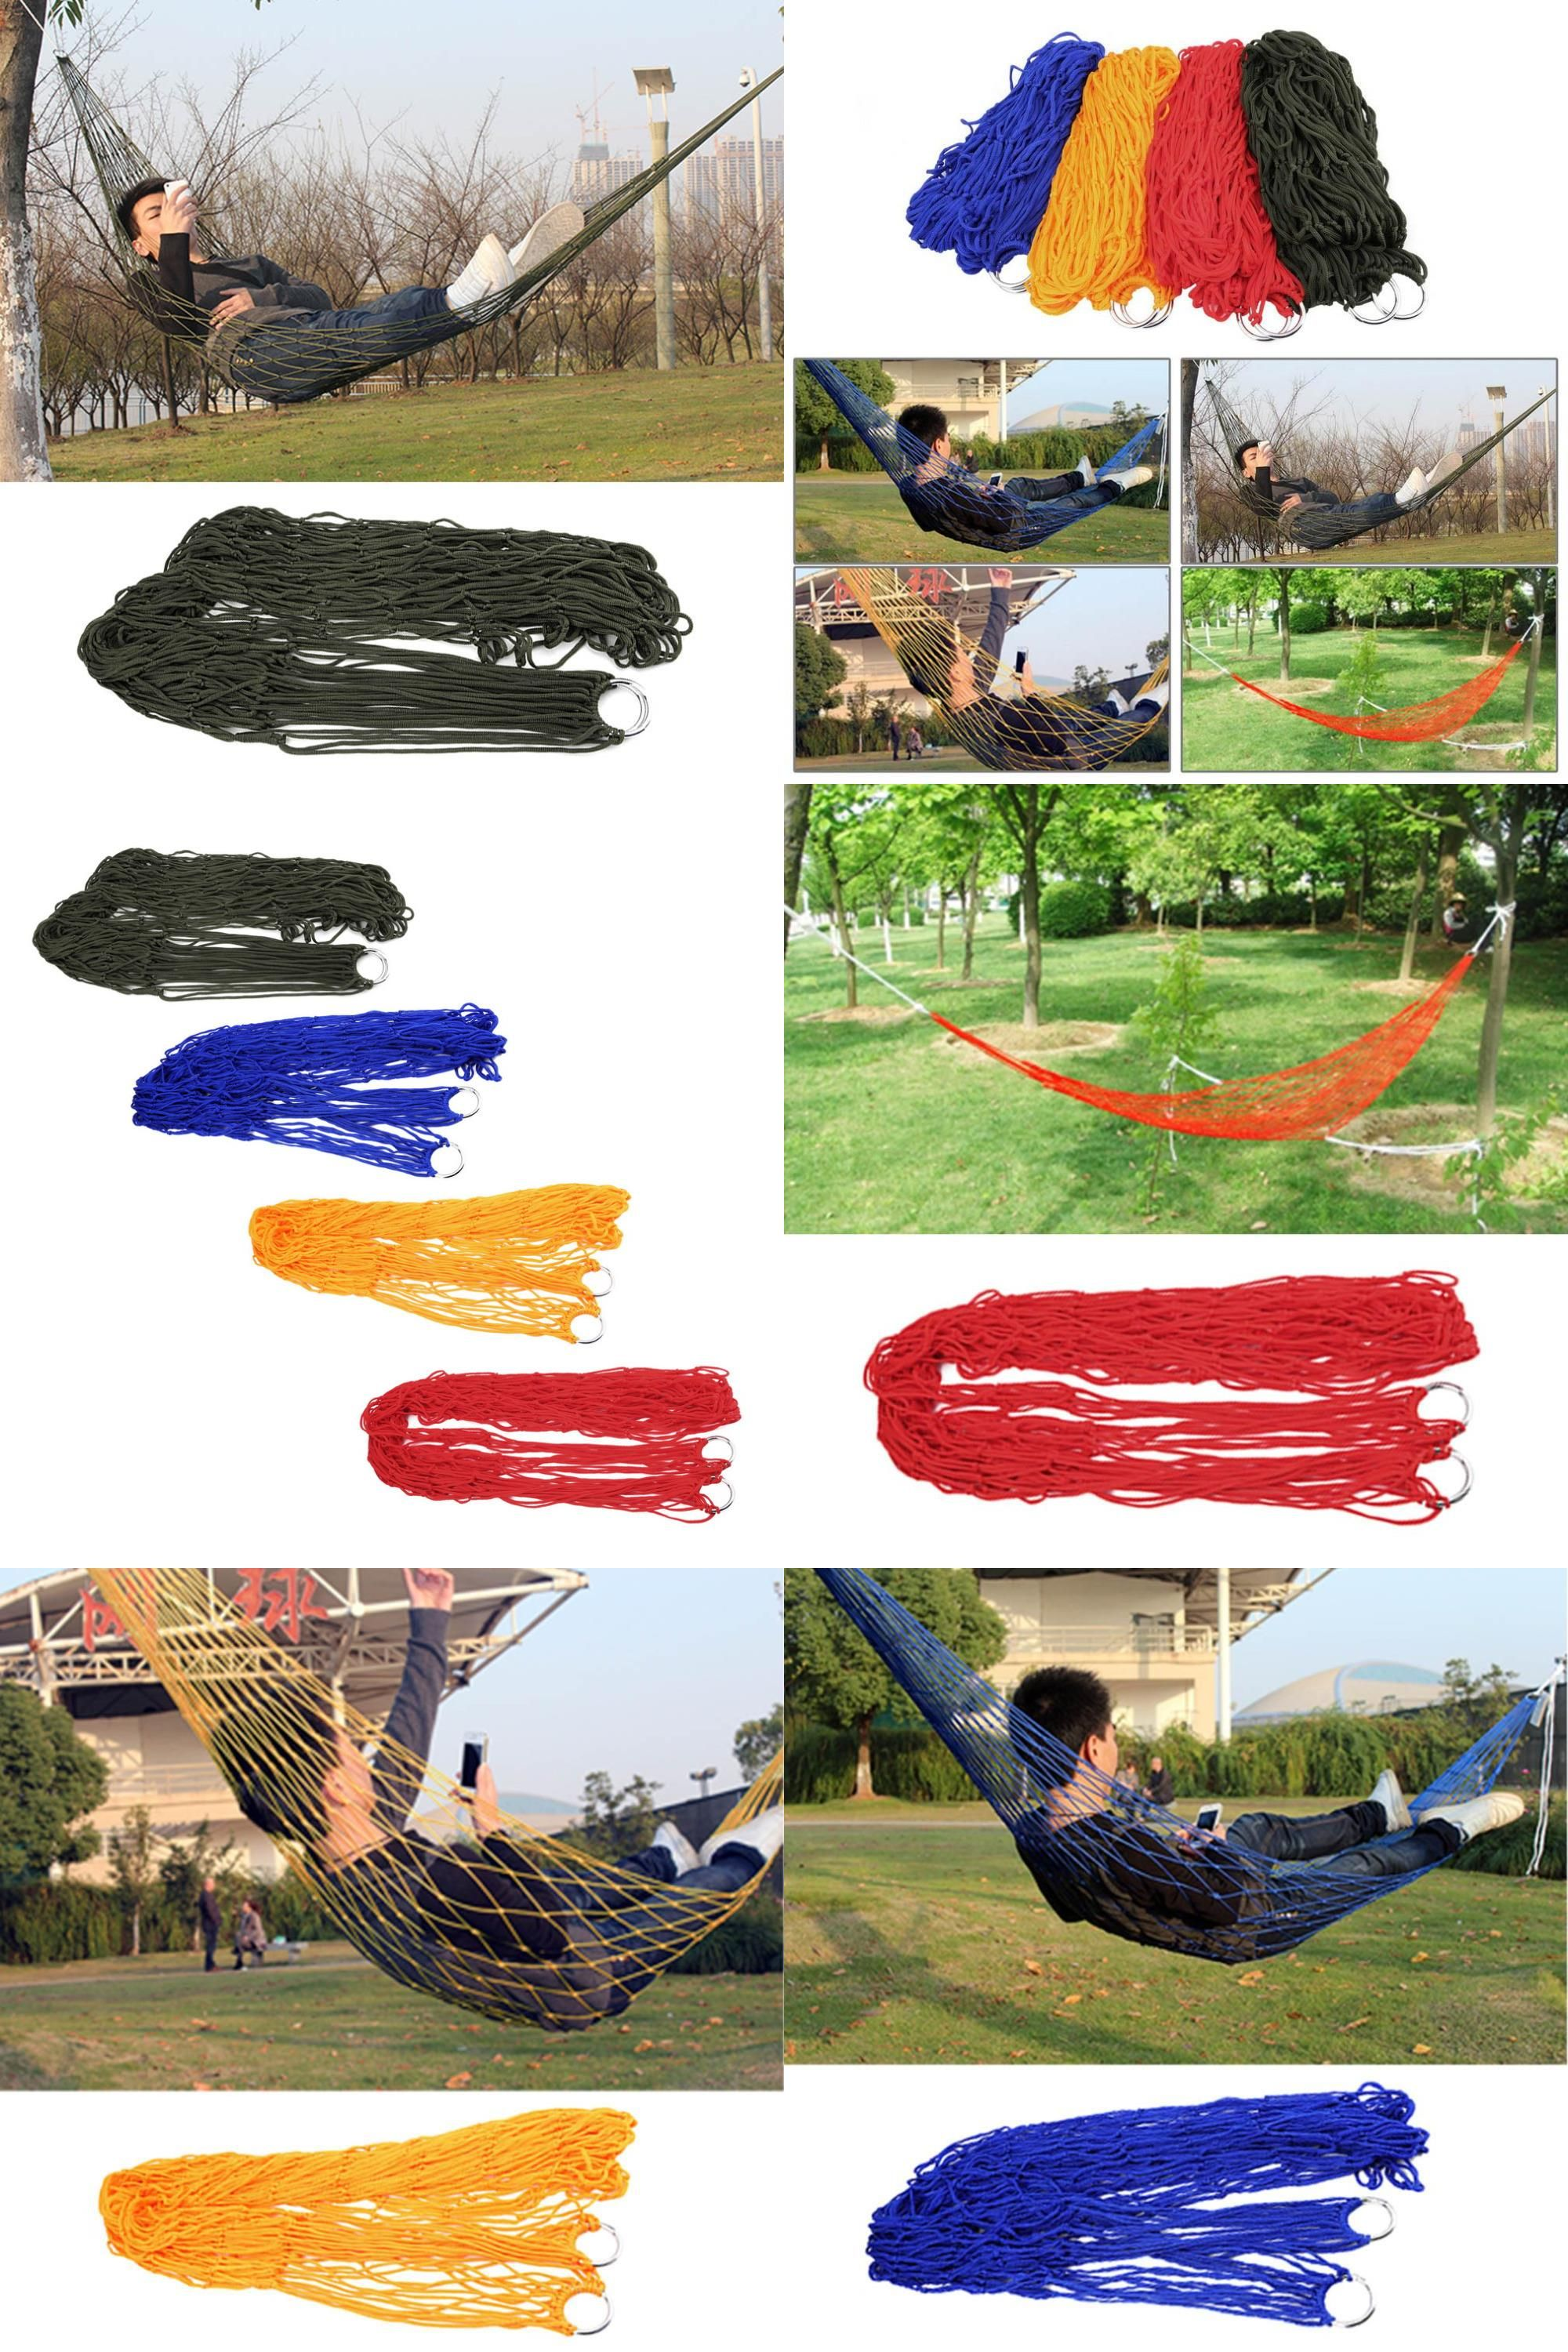 Lovely Portable Outdoor Hammock 280x 80cm 120 Kg Load-bearing Garden Sports Home Travel Camping Swing Canvas Stripe Hang Bed Hammock Camp Sleeping Gear Camping & Hiking